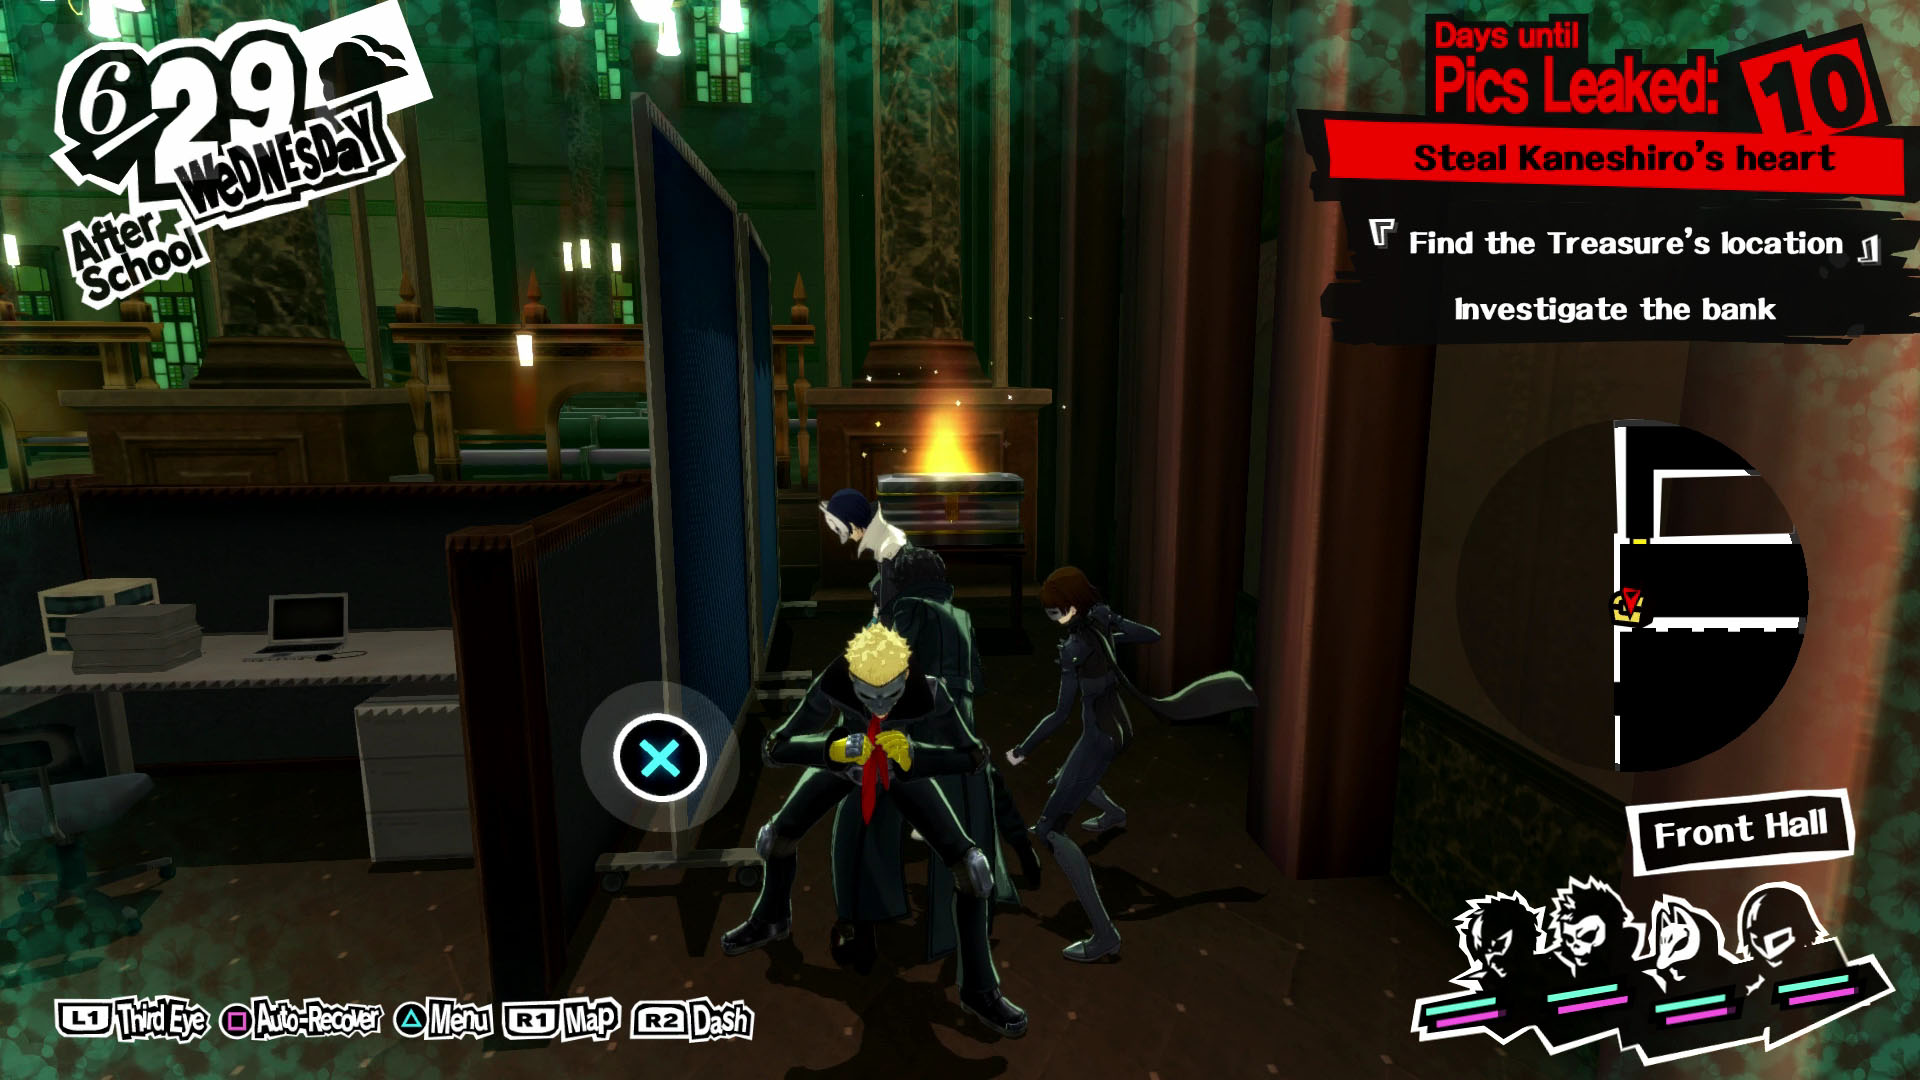 Persona 5 guide: Kaneshiro's Bank palace walkthrough - Polygon